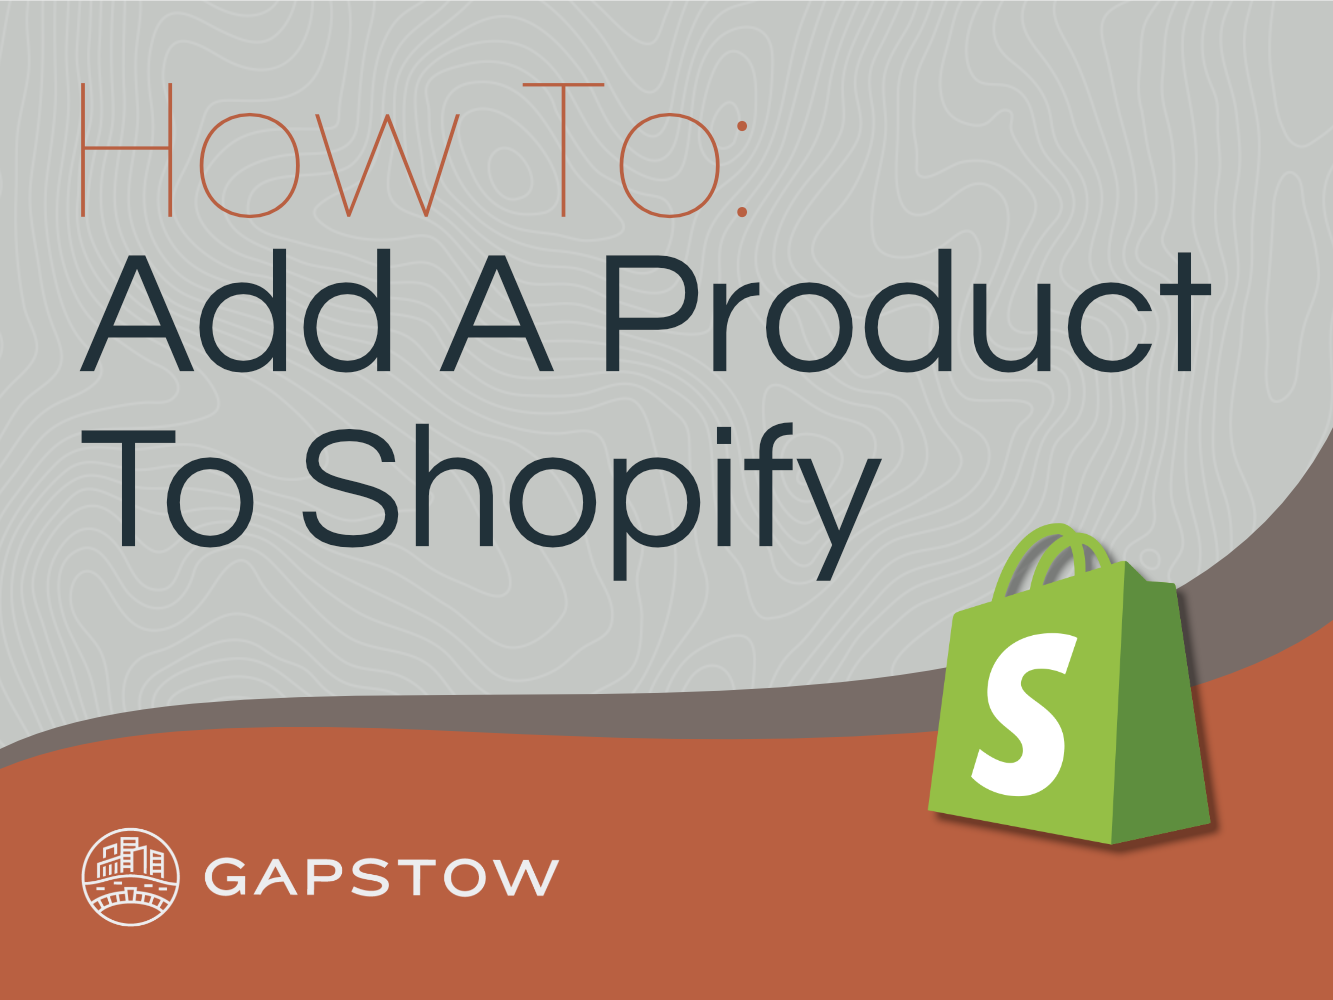 how to add a product to shopify logo image